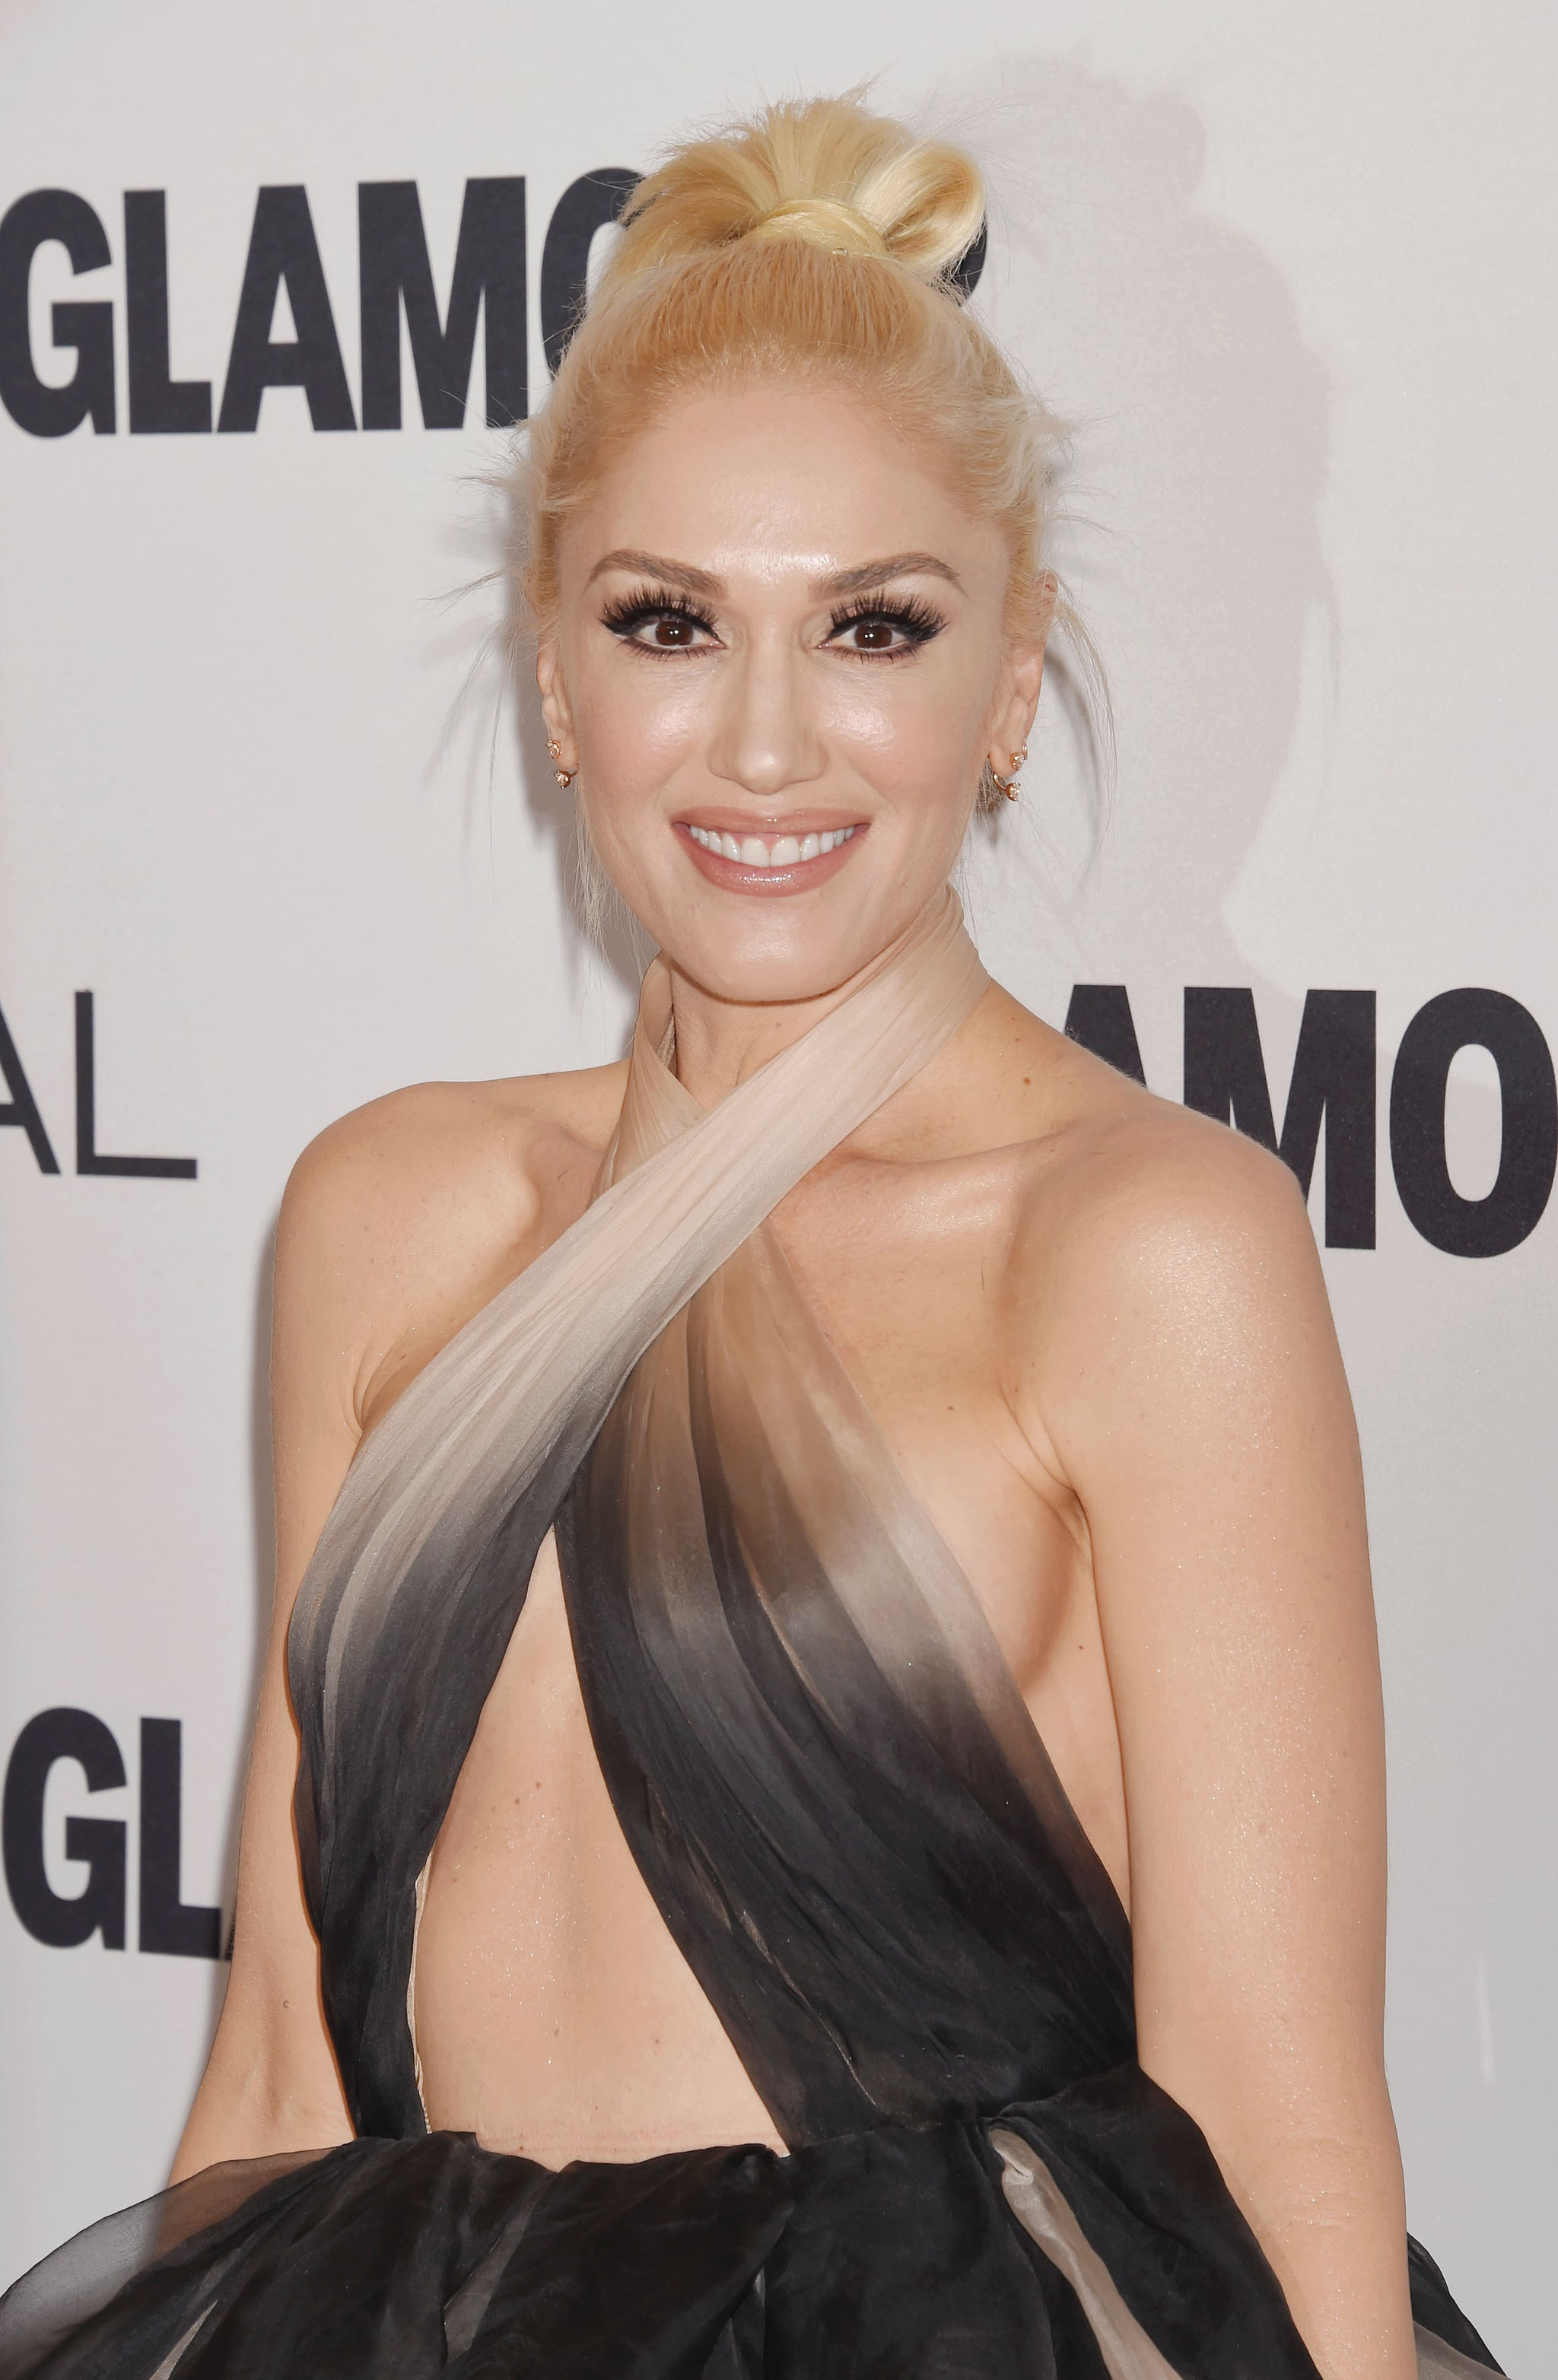 Gwen stefani what you waiting for compilation 3